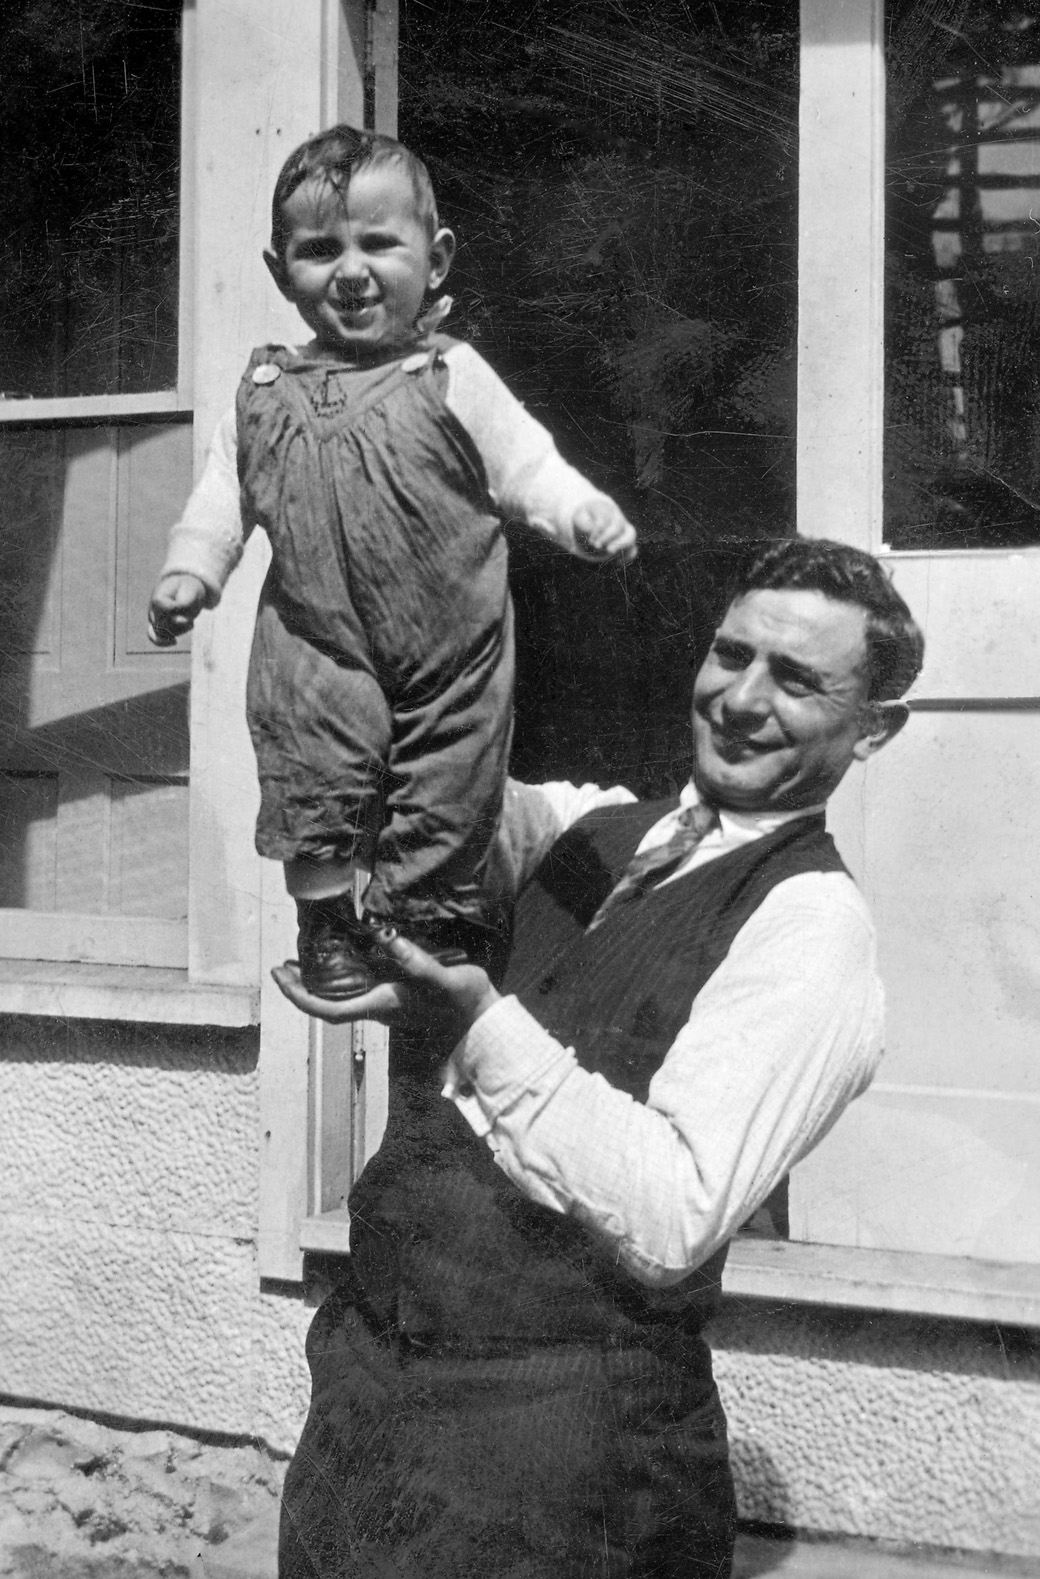 man and baby boy possibly Lyle Nelson